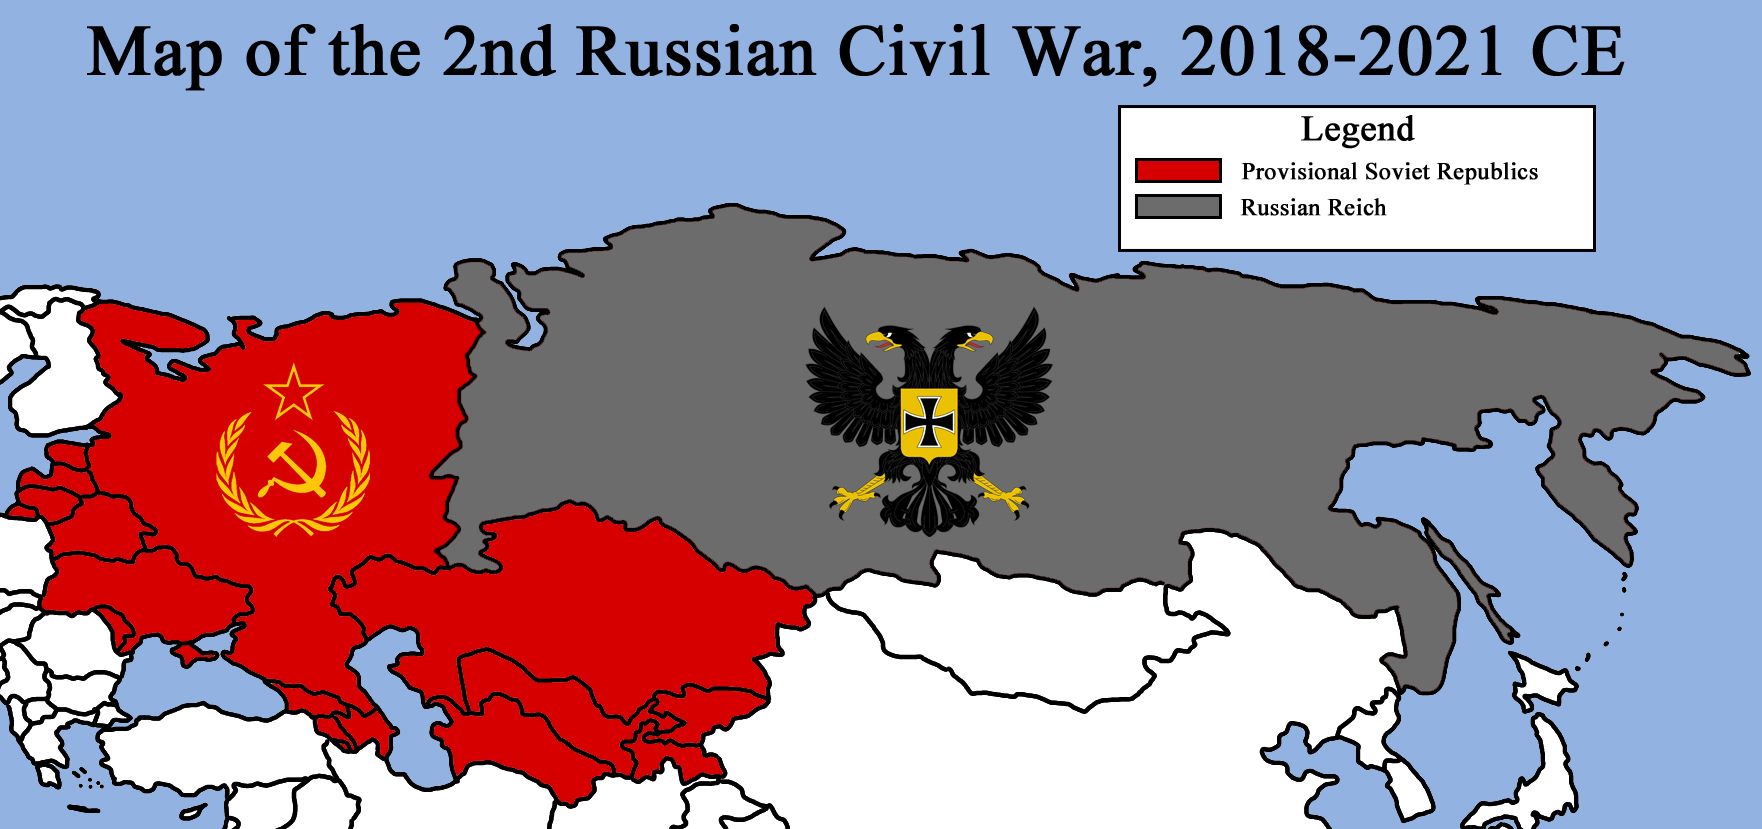 map of the 2nd russian civil war 2018 2021 ce by redrich1917 on